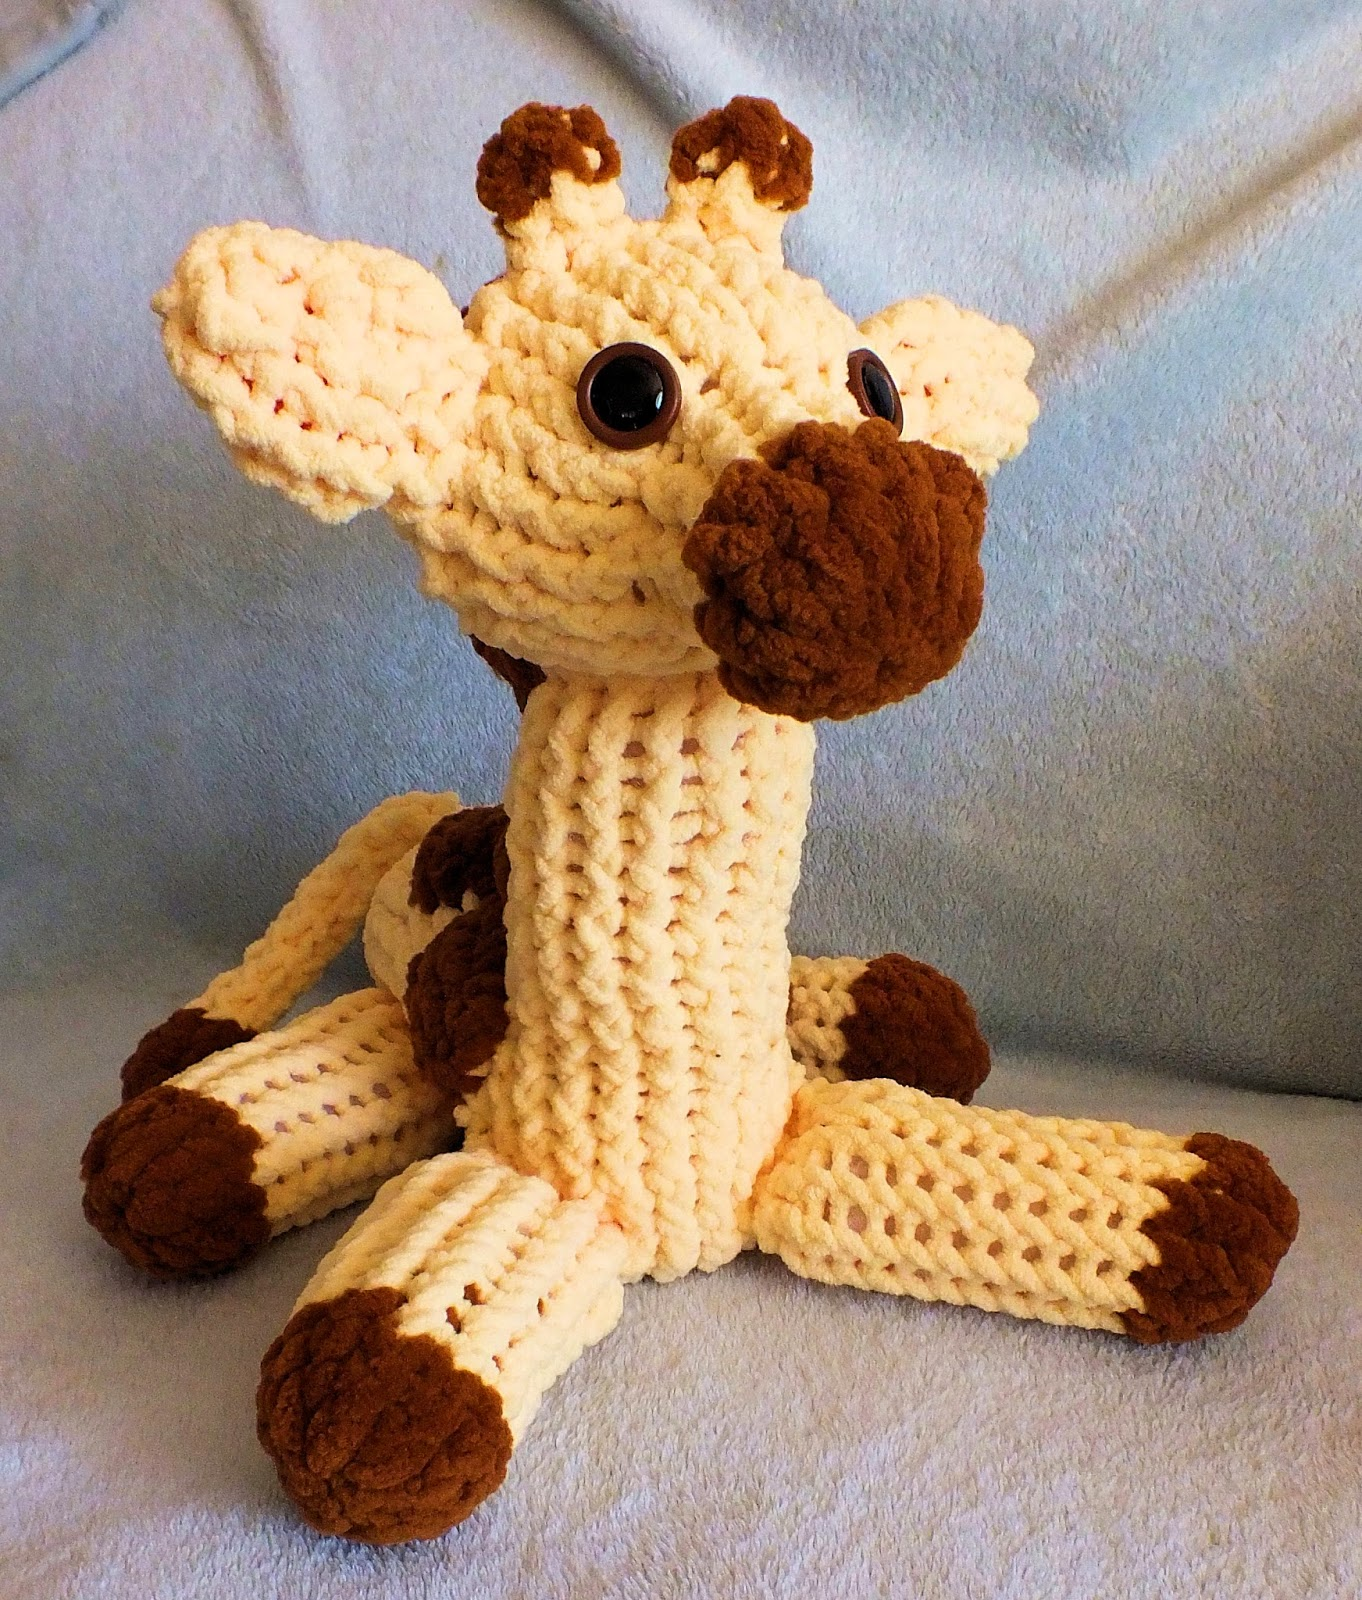 Knitting Pattern Giraffe : The Loom Muse : How to Loom Knit a Giraffe Pattern